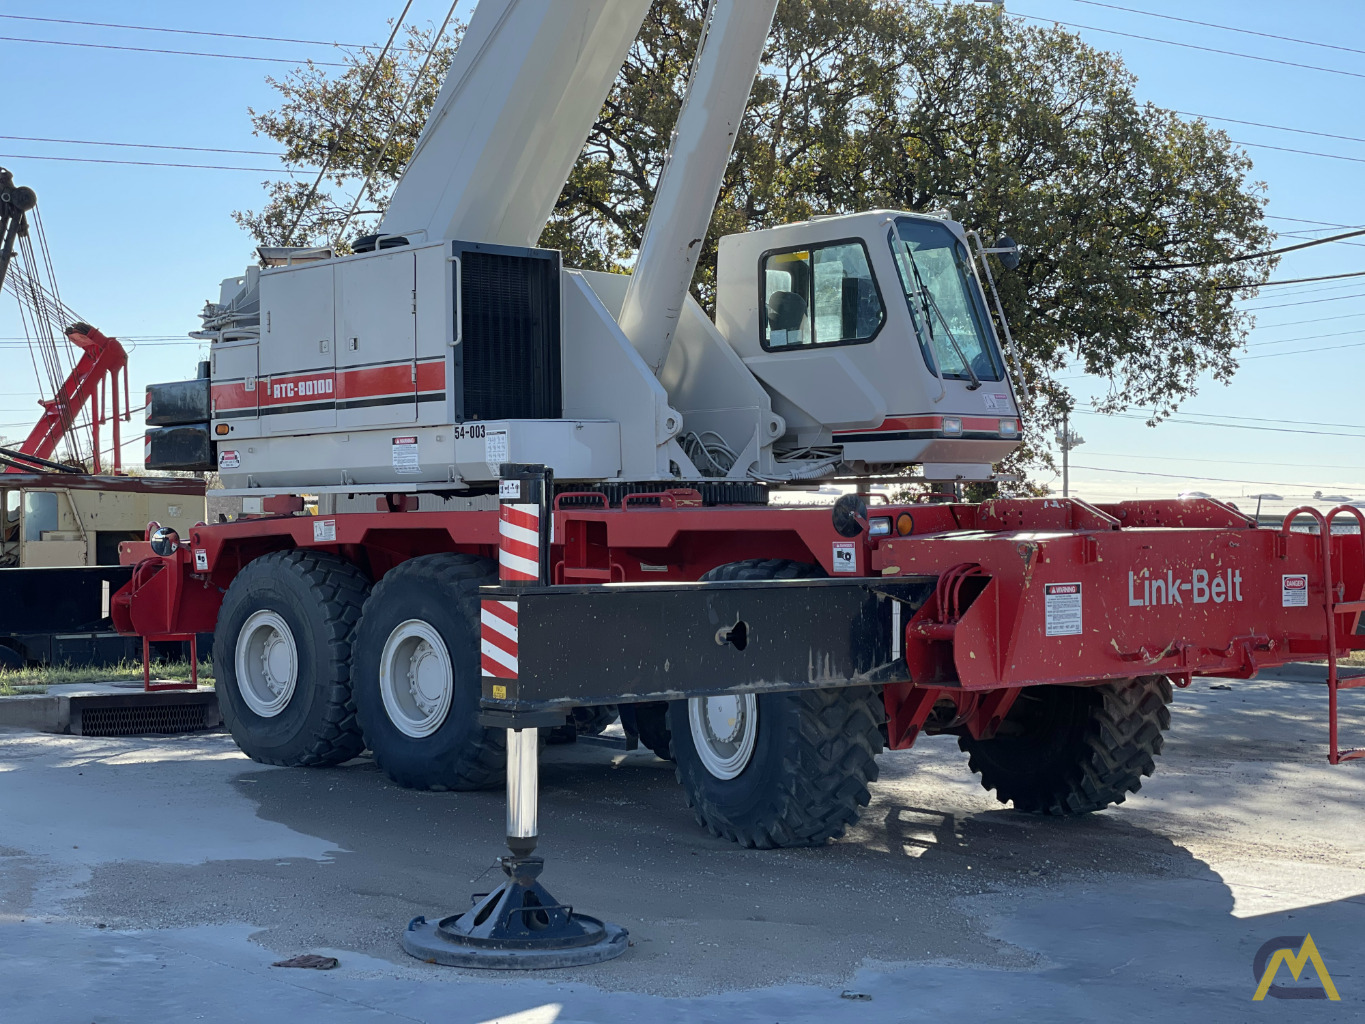 Link-Belt RTC-80100 100-Ton Rough Terrain Crane 1